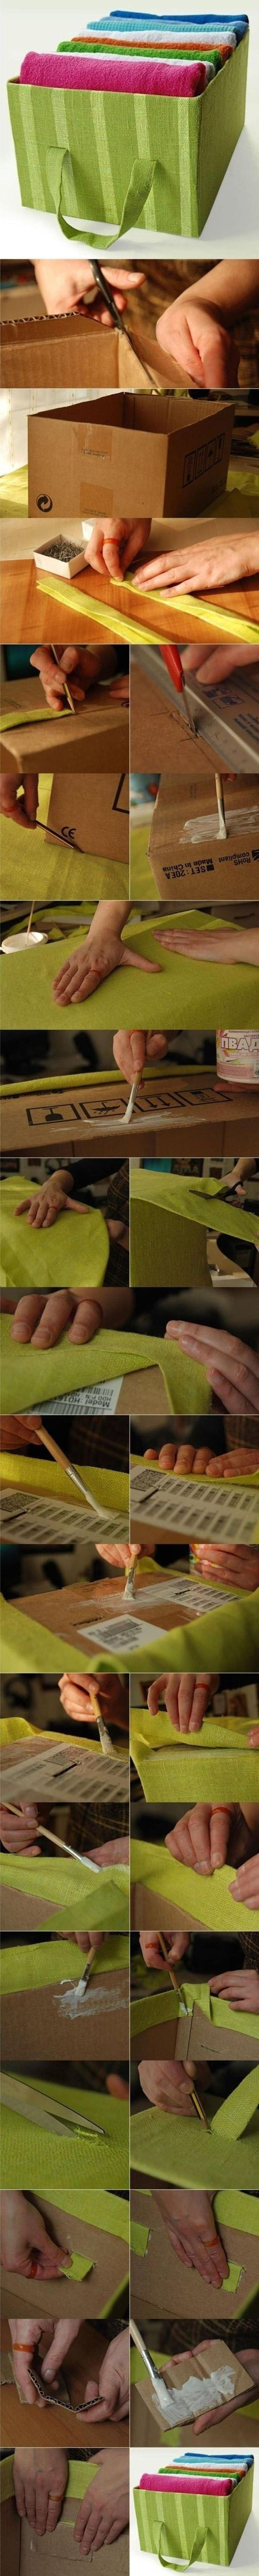 Make a box for organizing towels, it is practical, beautiful and super easy to make!The box is not only to organize fluffy towels, is also ...